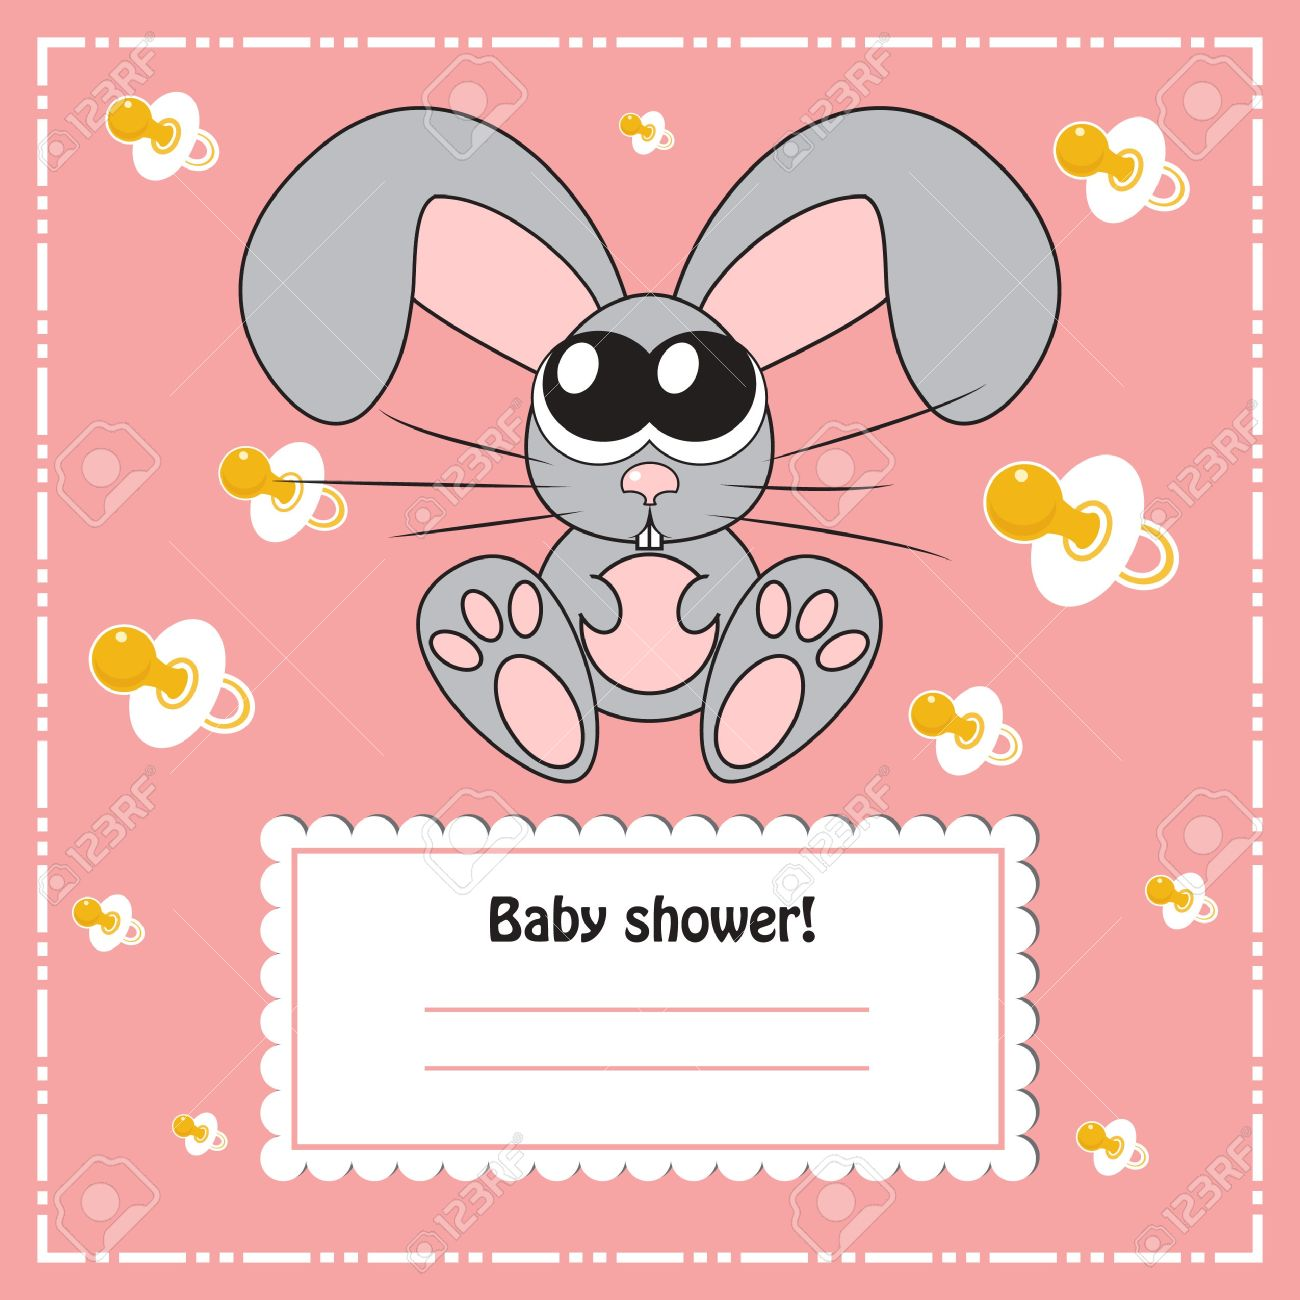 Baby Shower Invitation Card With Rabbit, Vector Royalty Free ...